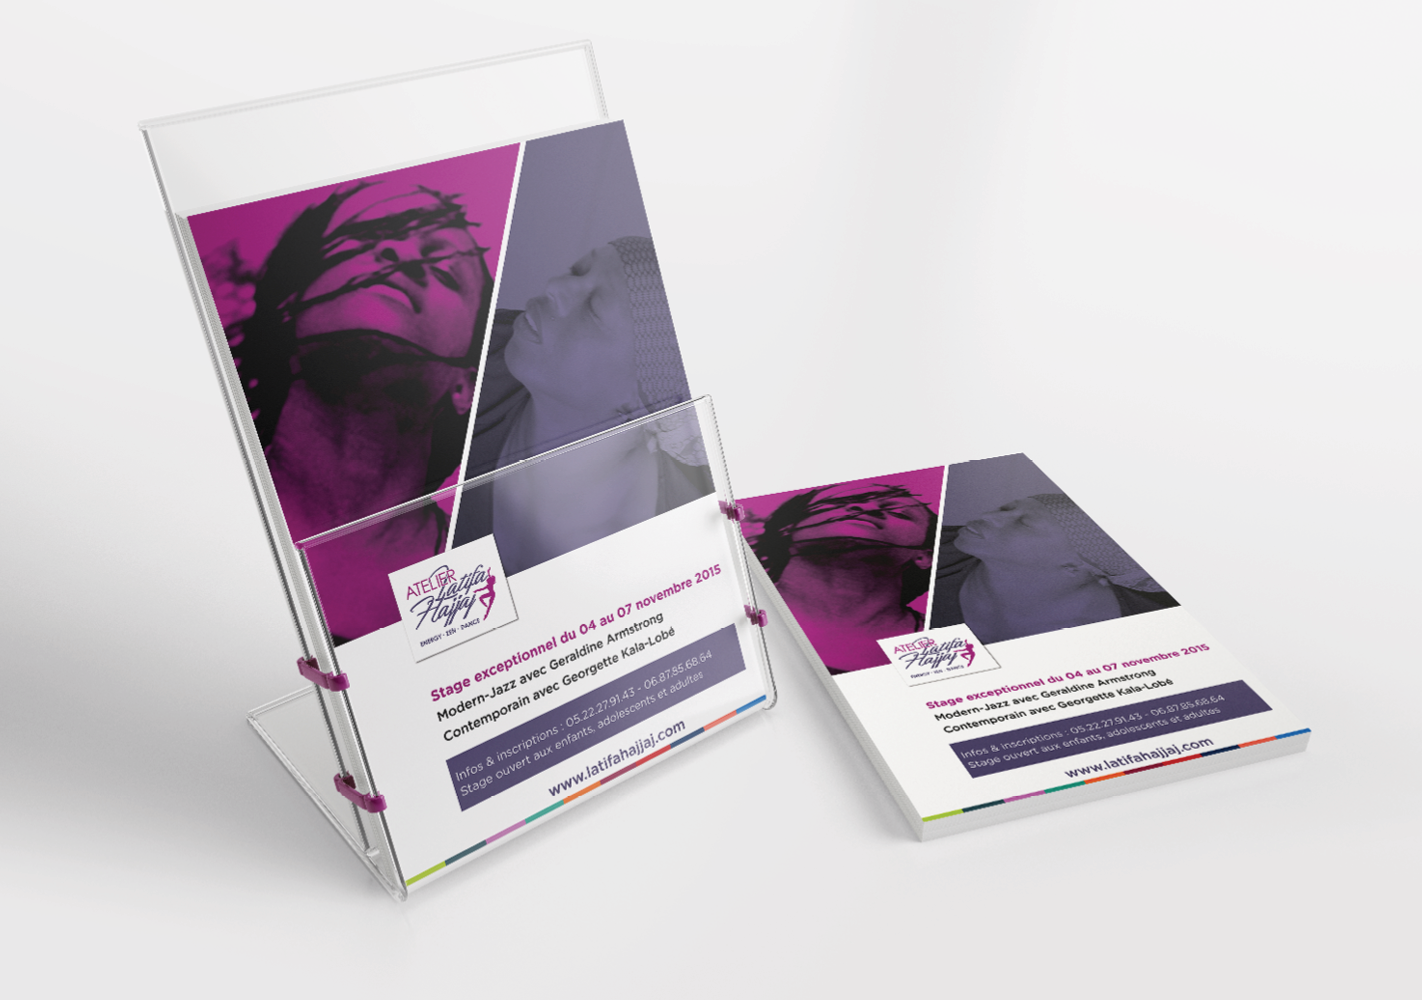 #Flyers : Conception, exécution et impression #Flyers : Design, execution and printing #Creative #Leaflet #Print